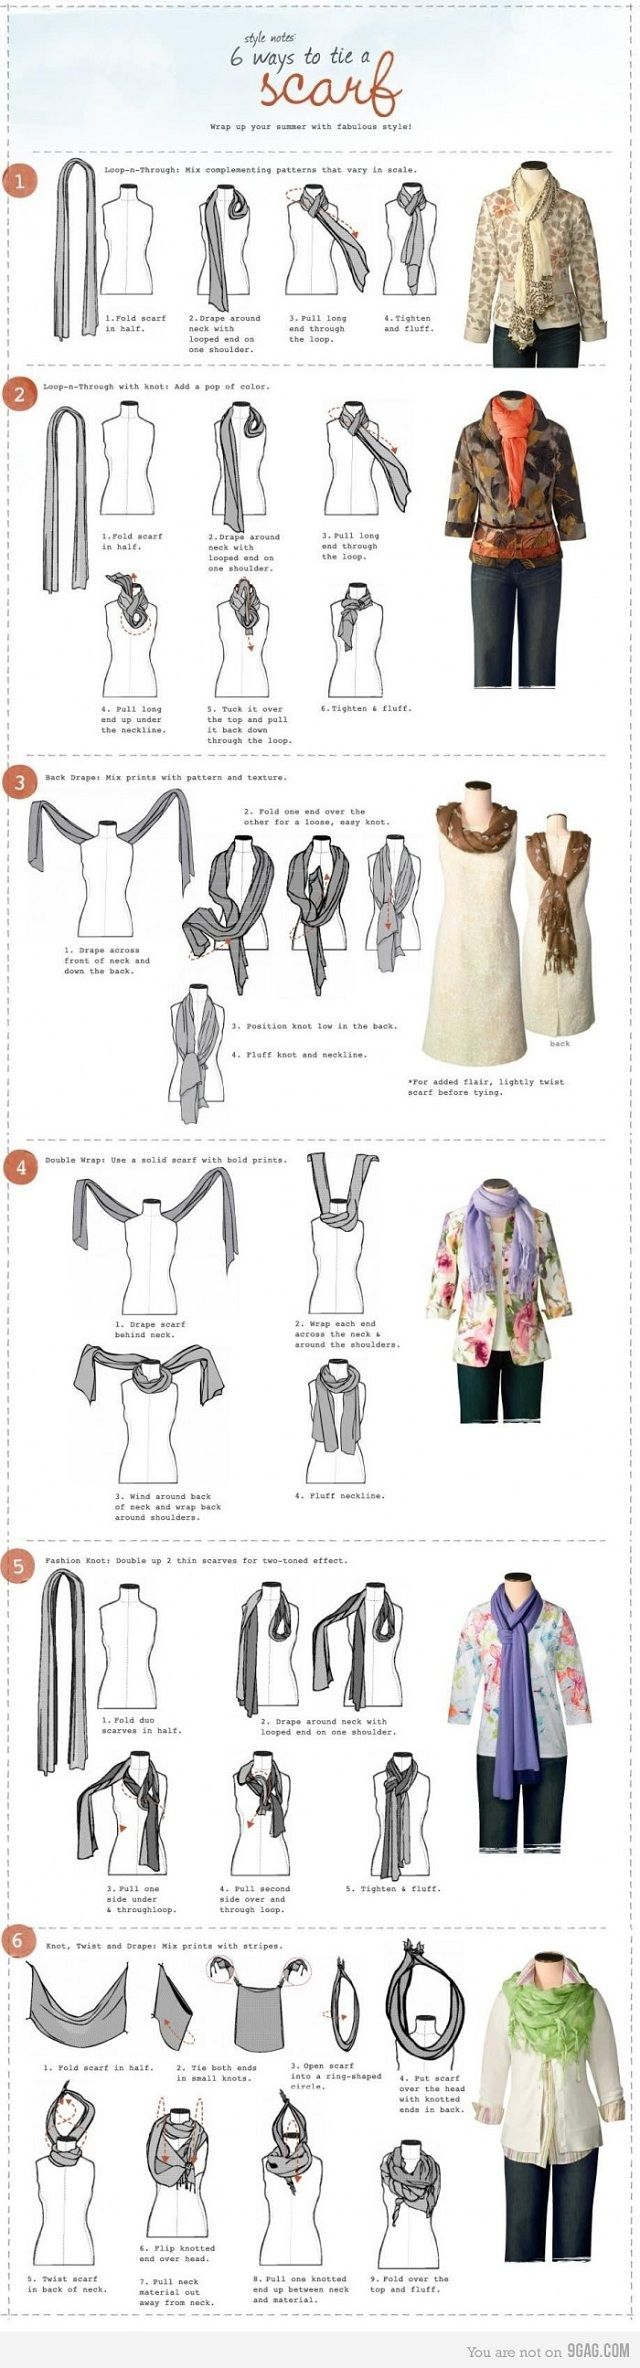 Ways to wear a scarf